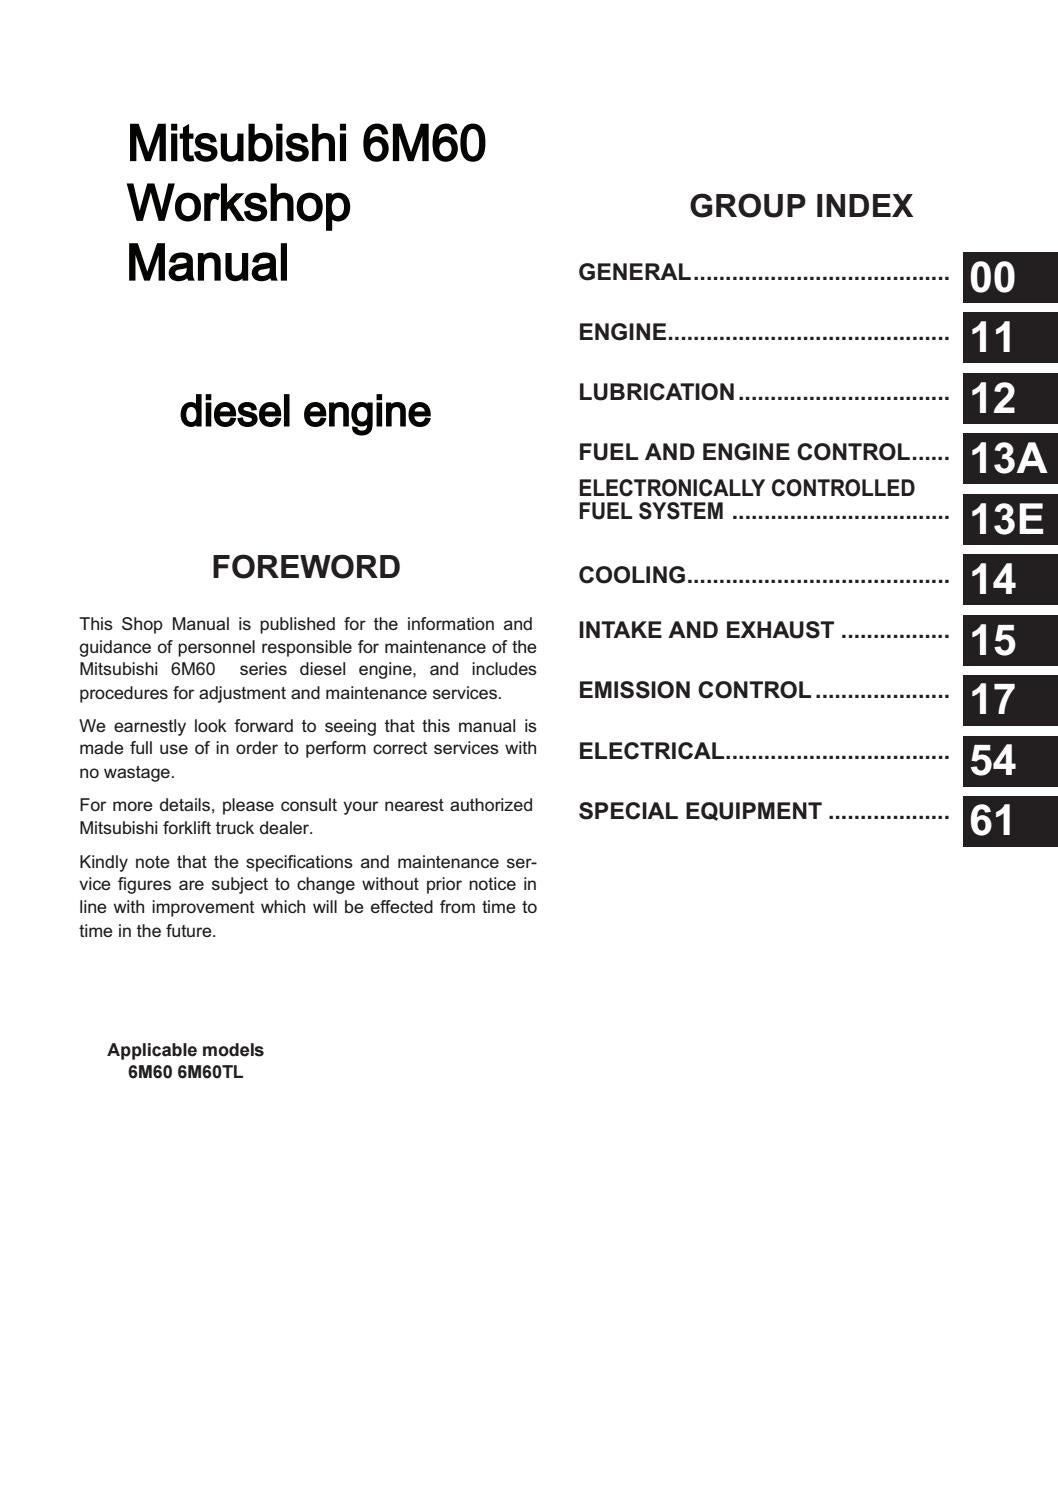 Mitsubishi 6M60 Engine Workshop Manual free download by